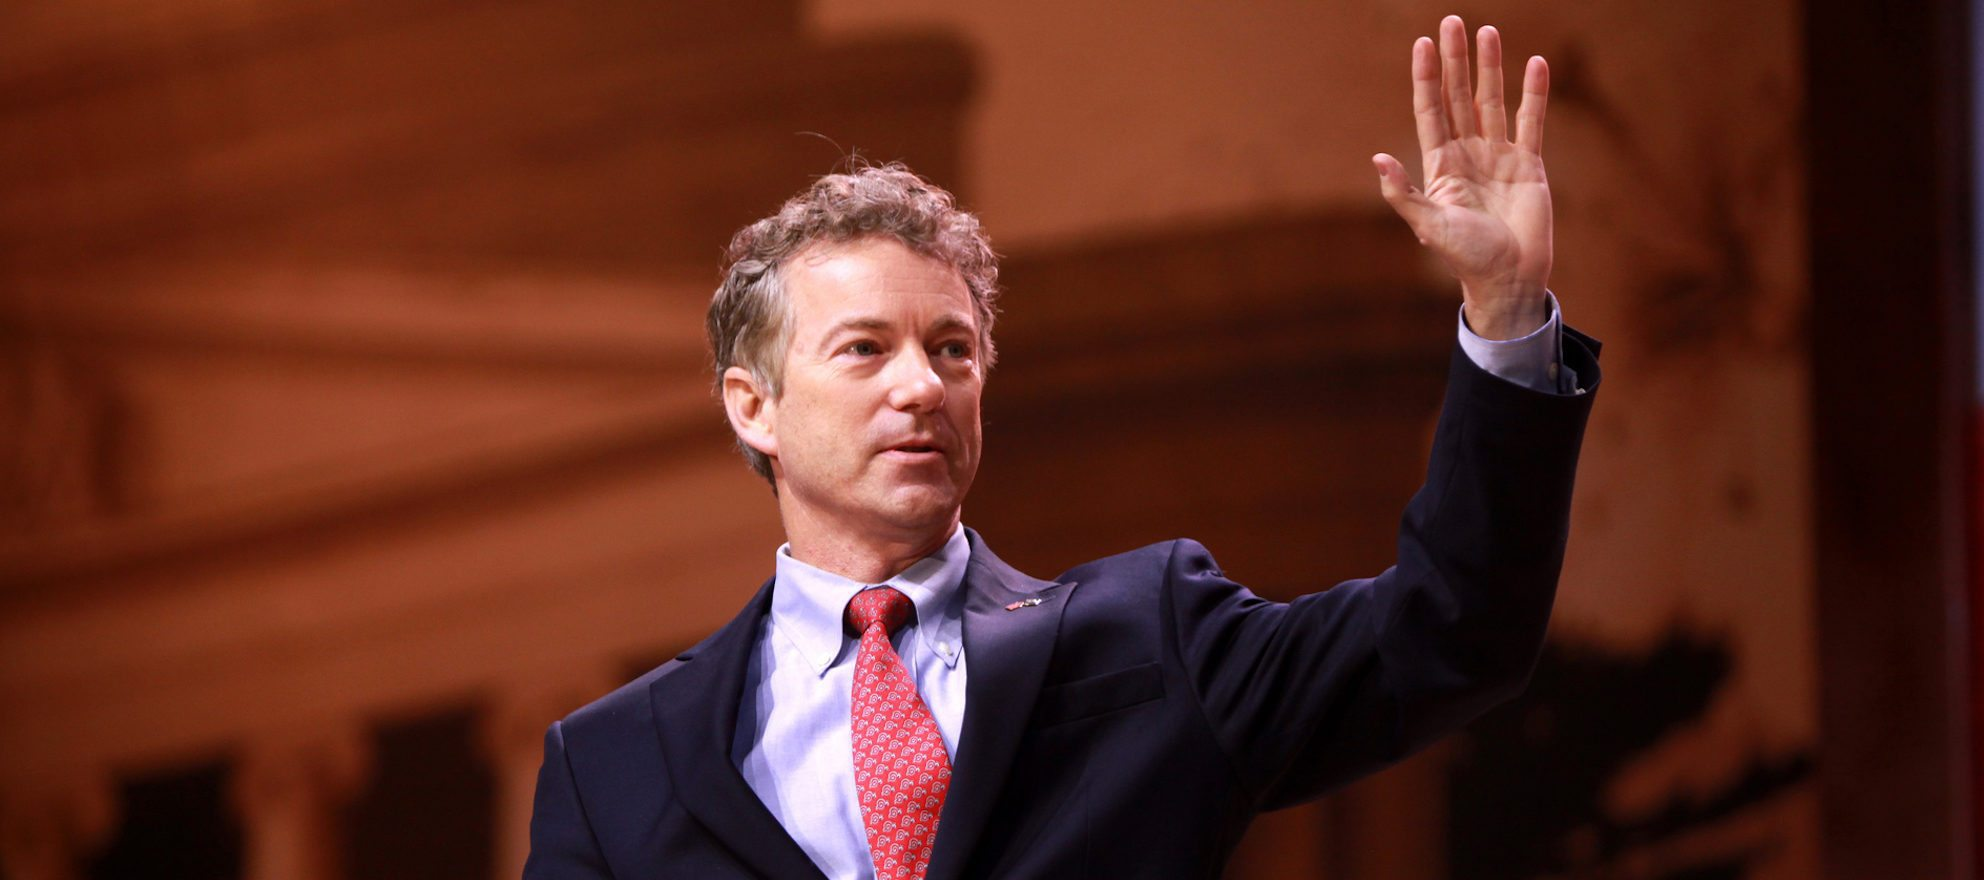 Real estate agents eye properties in Senator Rand Paul assault controversy